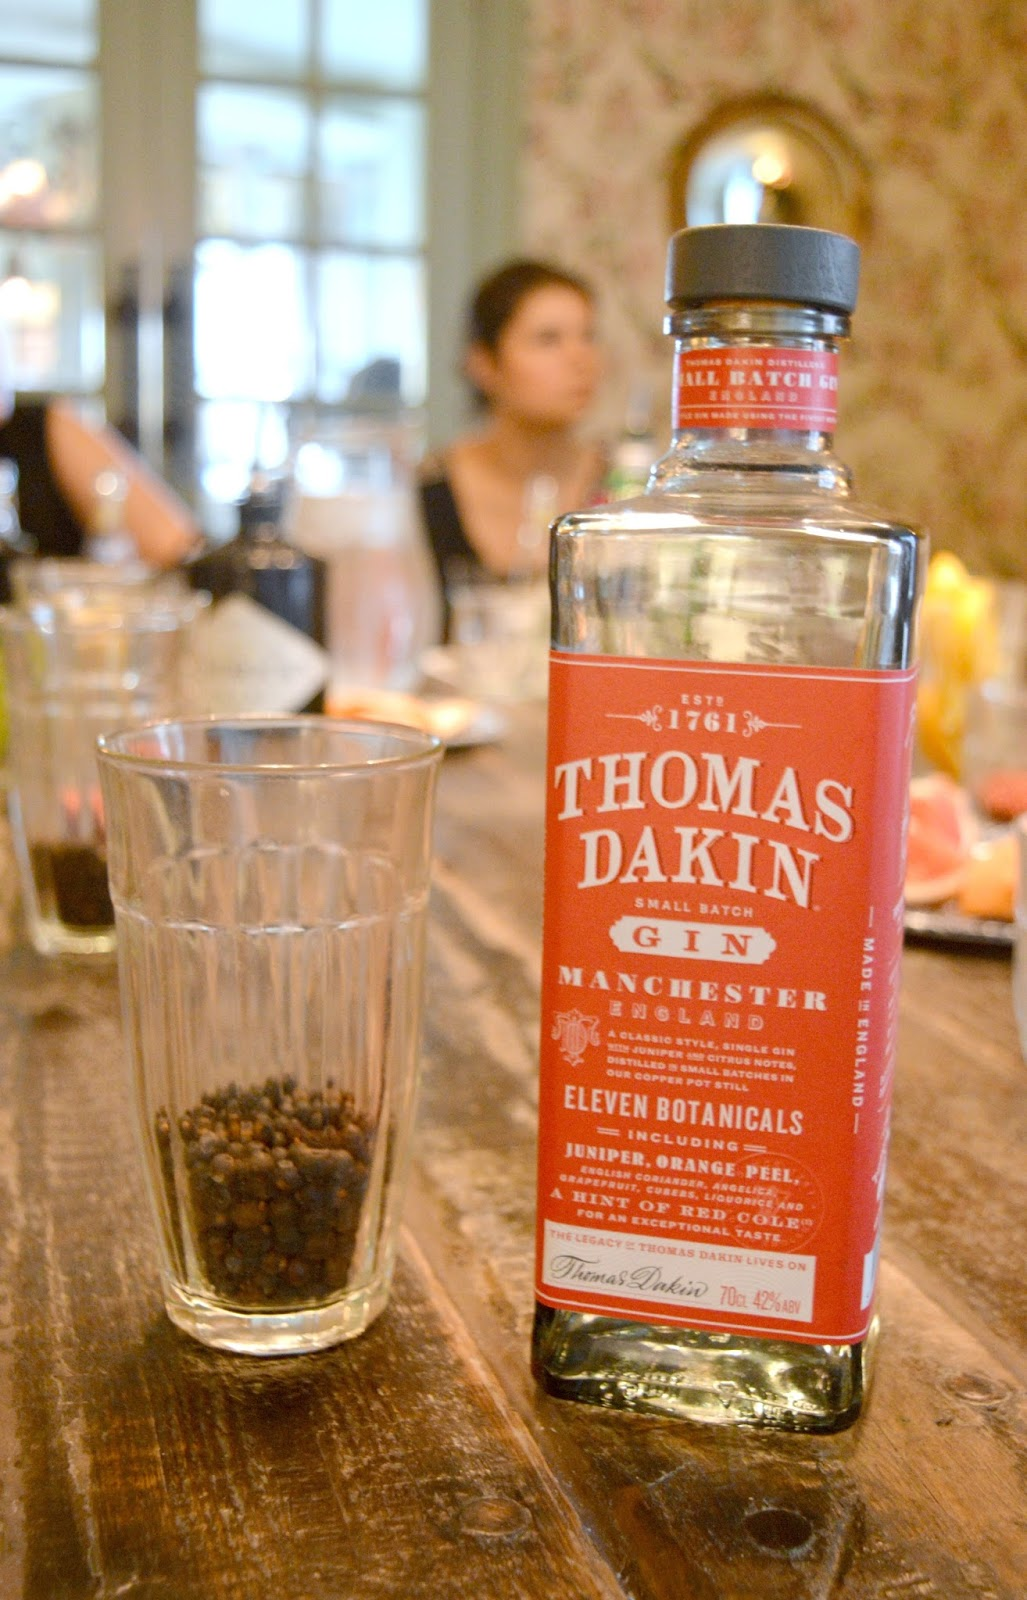 A Gin Masterclass at the Botanist Newcastle - Thomas Dakin